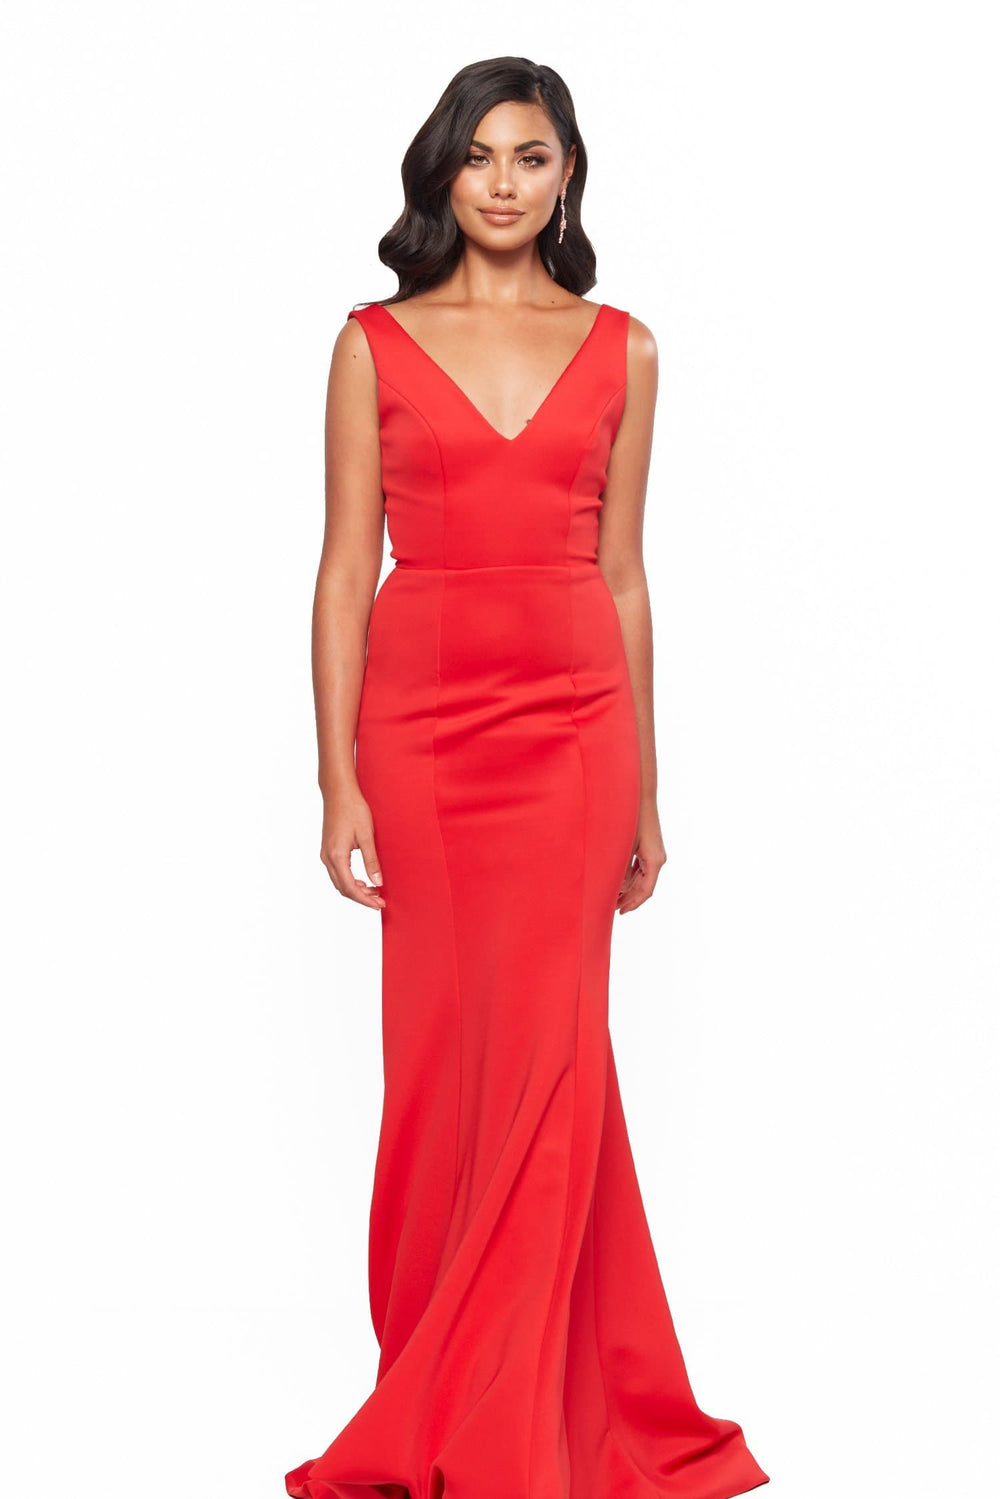 A&N Bridesmaids Makayla V-Neck Low Back Mermaid Gown - Red